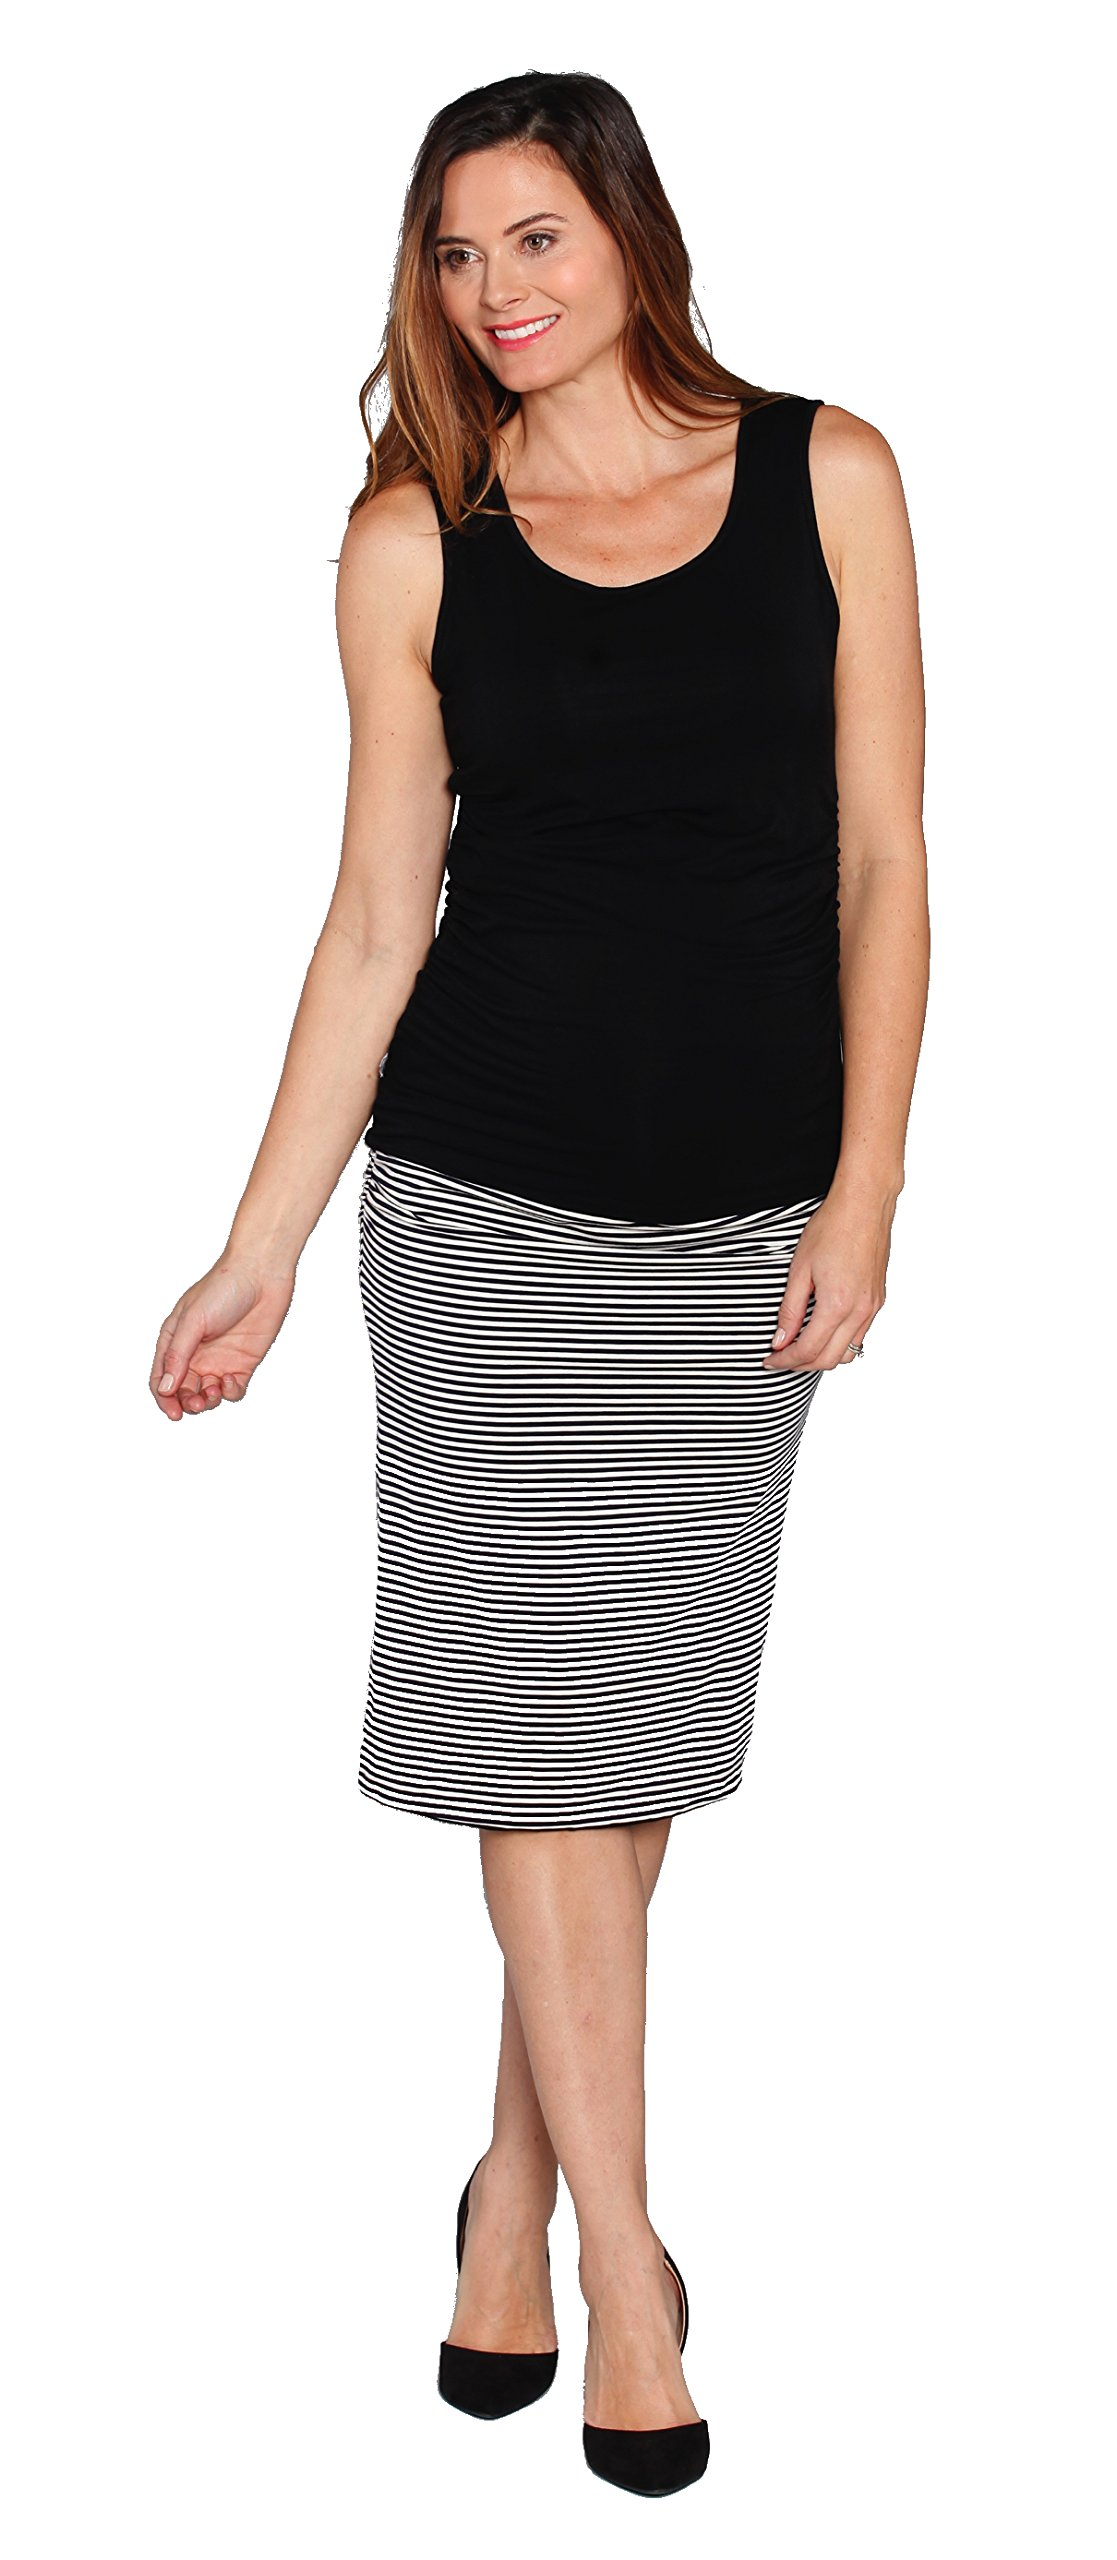 Angel Maternity Reversible Maternity Skirt: Black Skirt or Black and White Striped Skirt Stylish Fitted Maternity Skirt - S